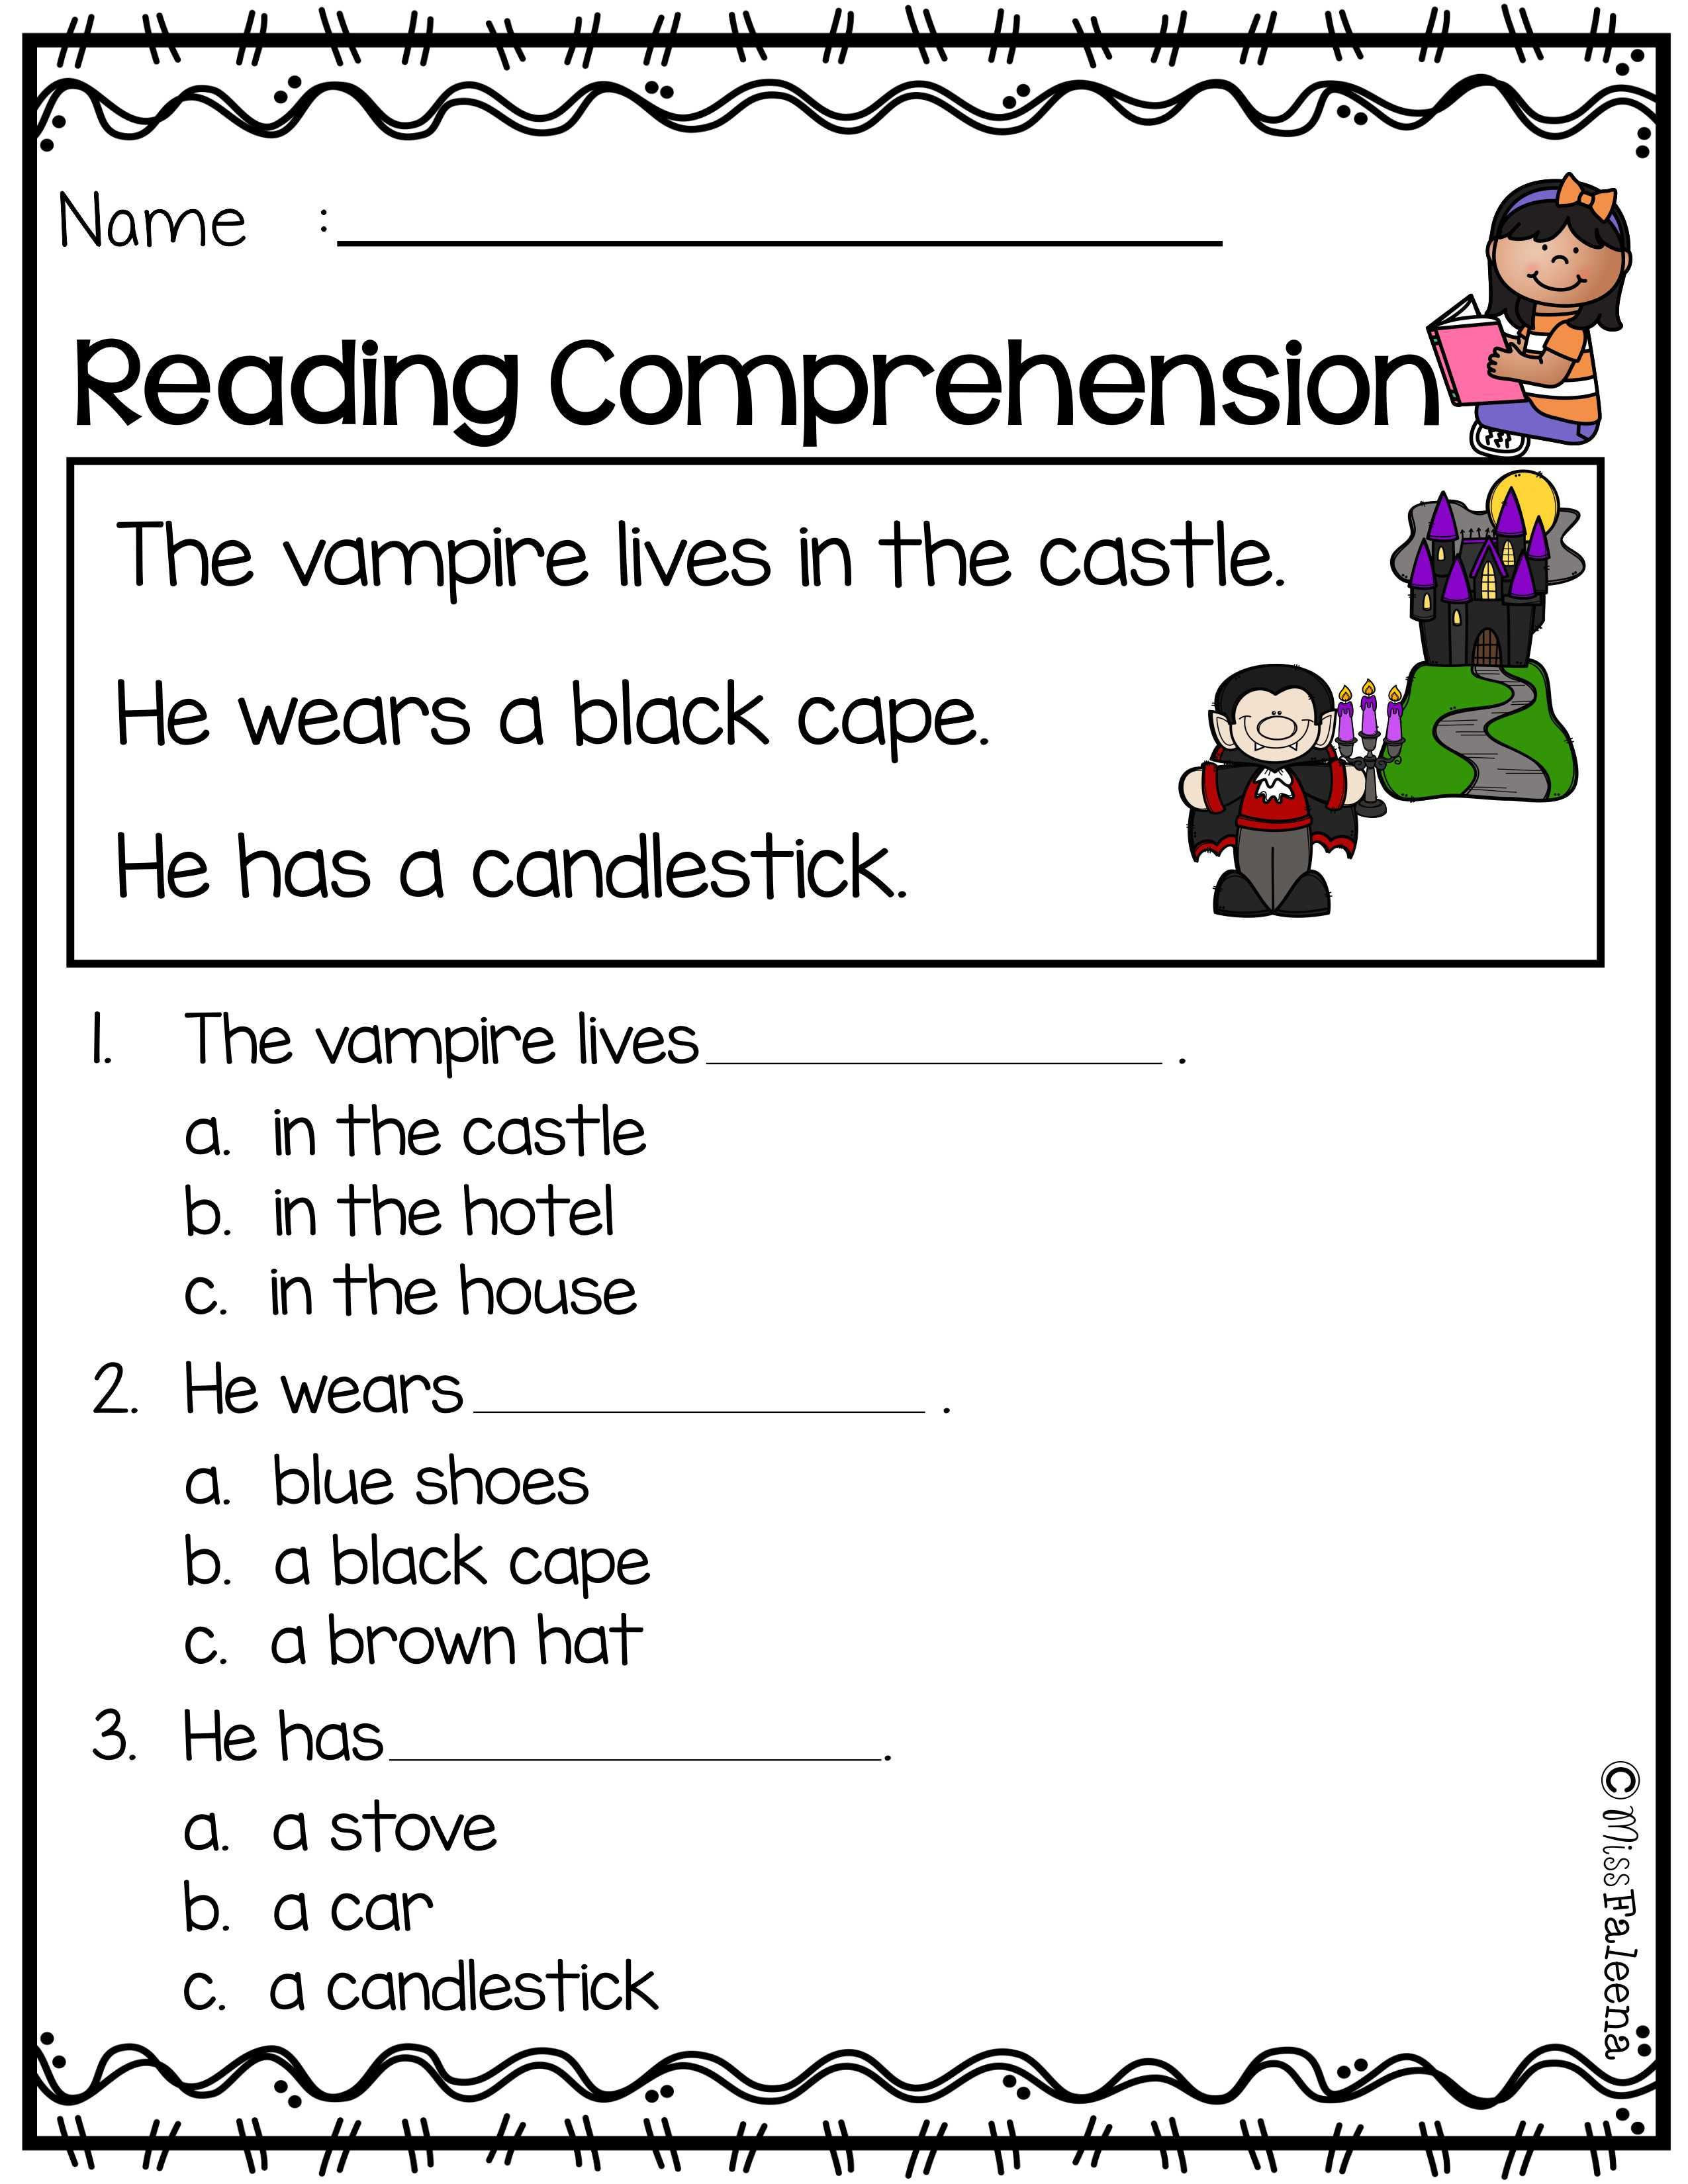 October Reading Comprehension With Images Reading